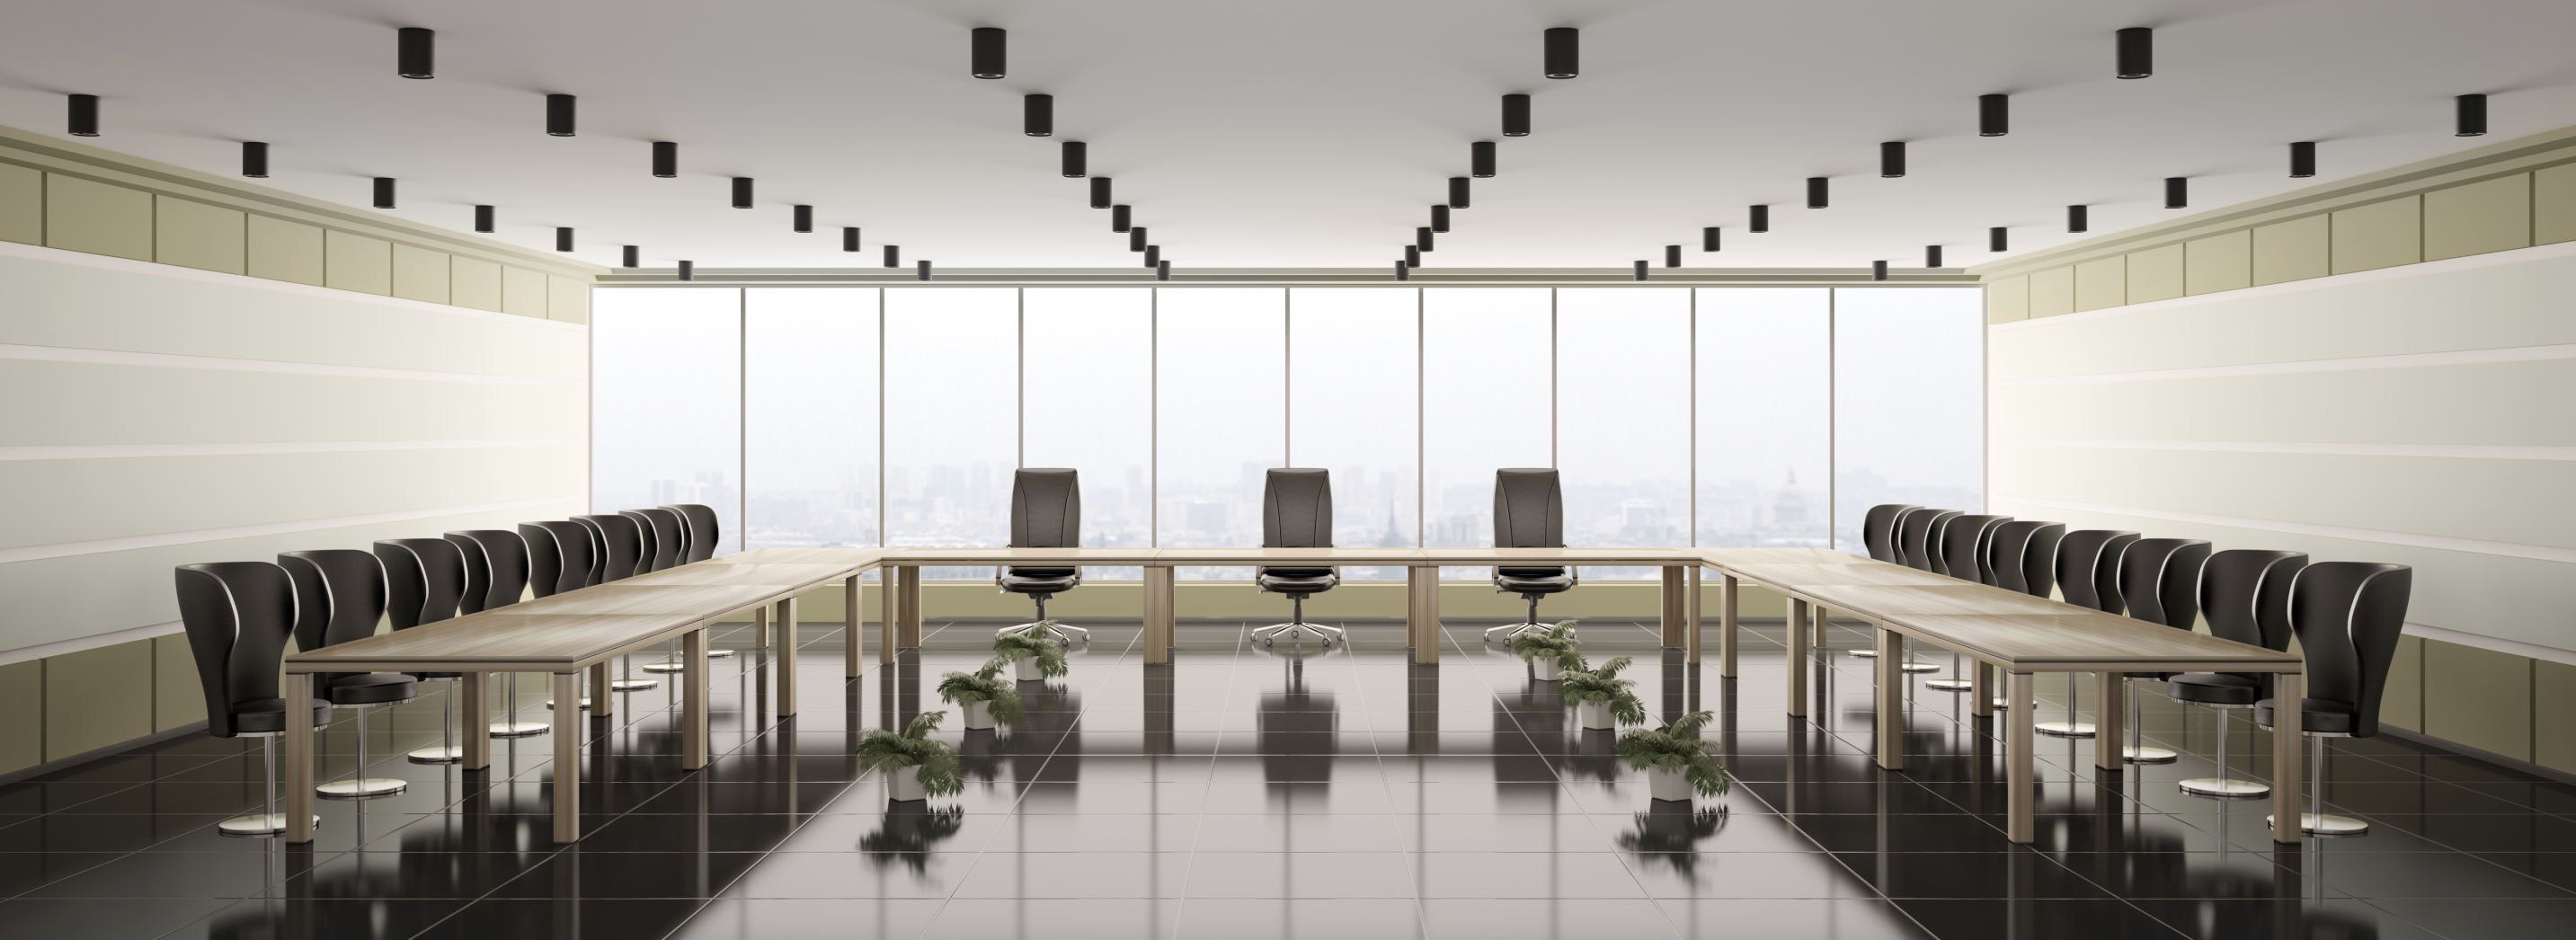 Modern boardroom interior panorama 3d